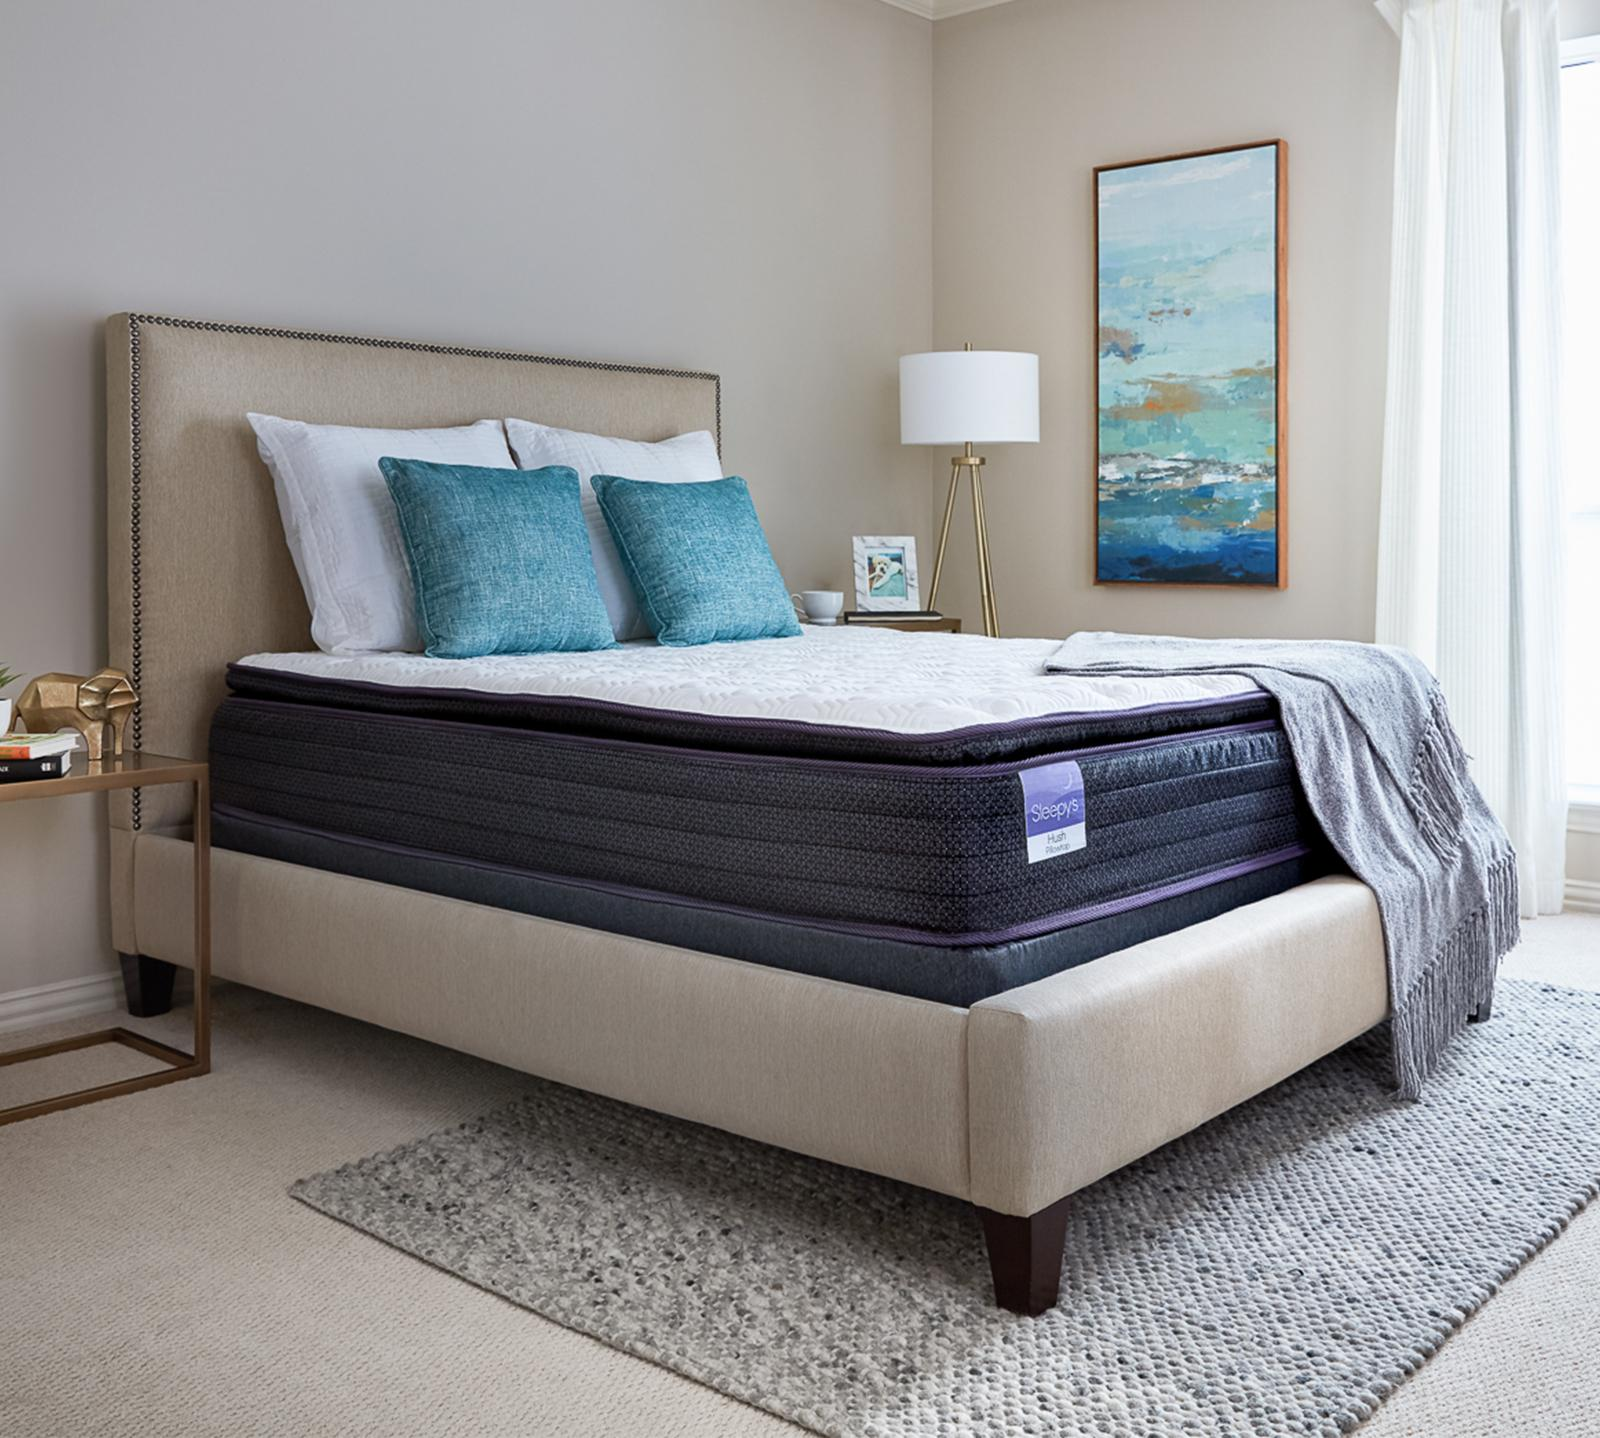 "Stretch your budget further and stretch out on your new Sleepy's mattress. The Sleepy's Hush 11"" pillow top mattress contours perfectly to every curve by utilizing four unique layers of foam. Two soft quilt foam layers that sit on top of a comfort foam layer provide ultimate luxurious comfort and superior pressure relief. The cooling gel-infused memory foam dissipates body heat, while the high-density, individually wrapped coil system minimizes motion transfer which reduces tossing and turning. At the very bottom, a layer of high-density, shock-absorbing base foam helps the encased coils react to your body movement and enhances support. The sides are encased by five-and-a-half foam rails that support the top layers of your mattress, so it won't sag or settle, no matter how you sleep."